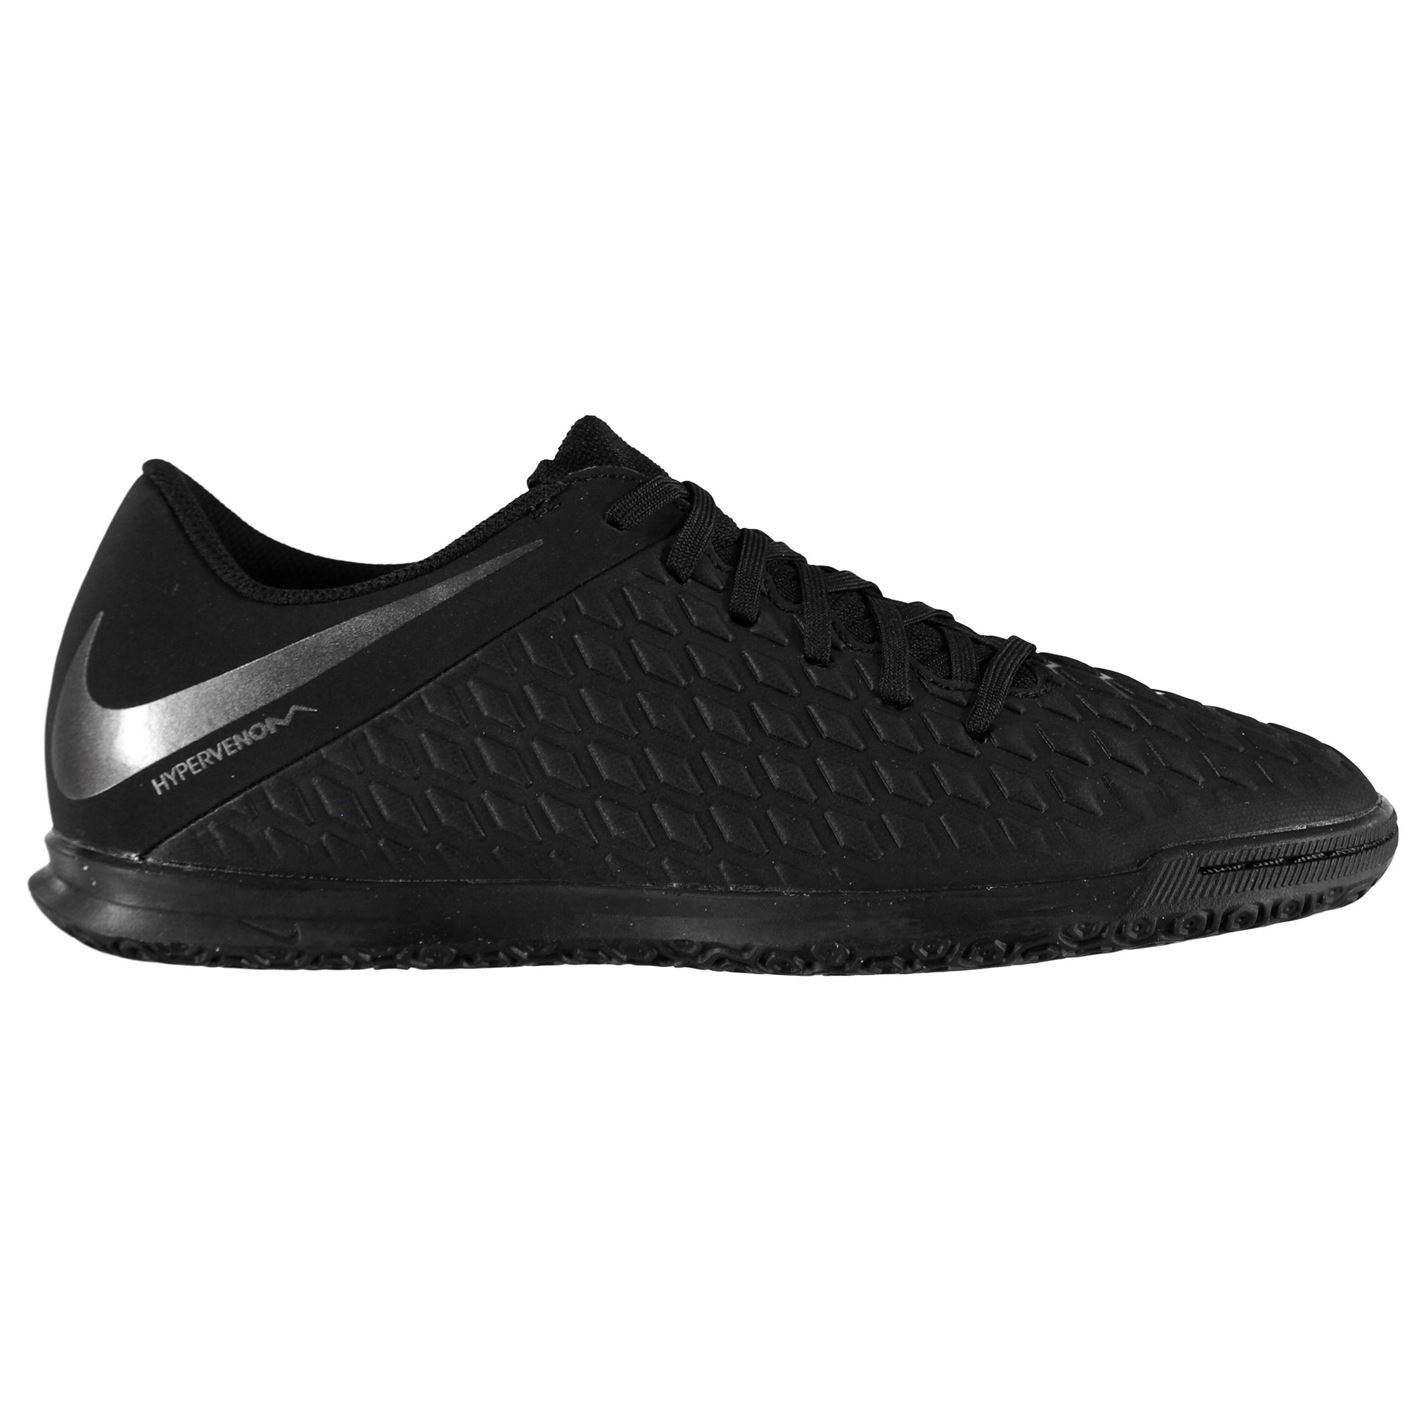 new arrival 857cb f3a6d Details about Nike Hypervenom Phantom Club Indoor Football Trainers Mens  Soccer Futsal Shoes